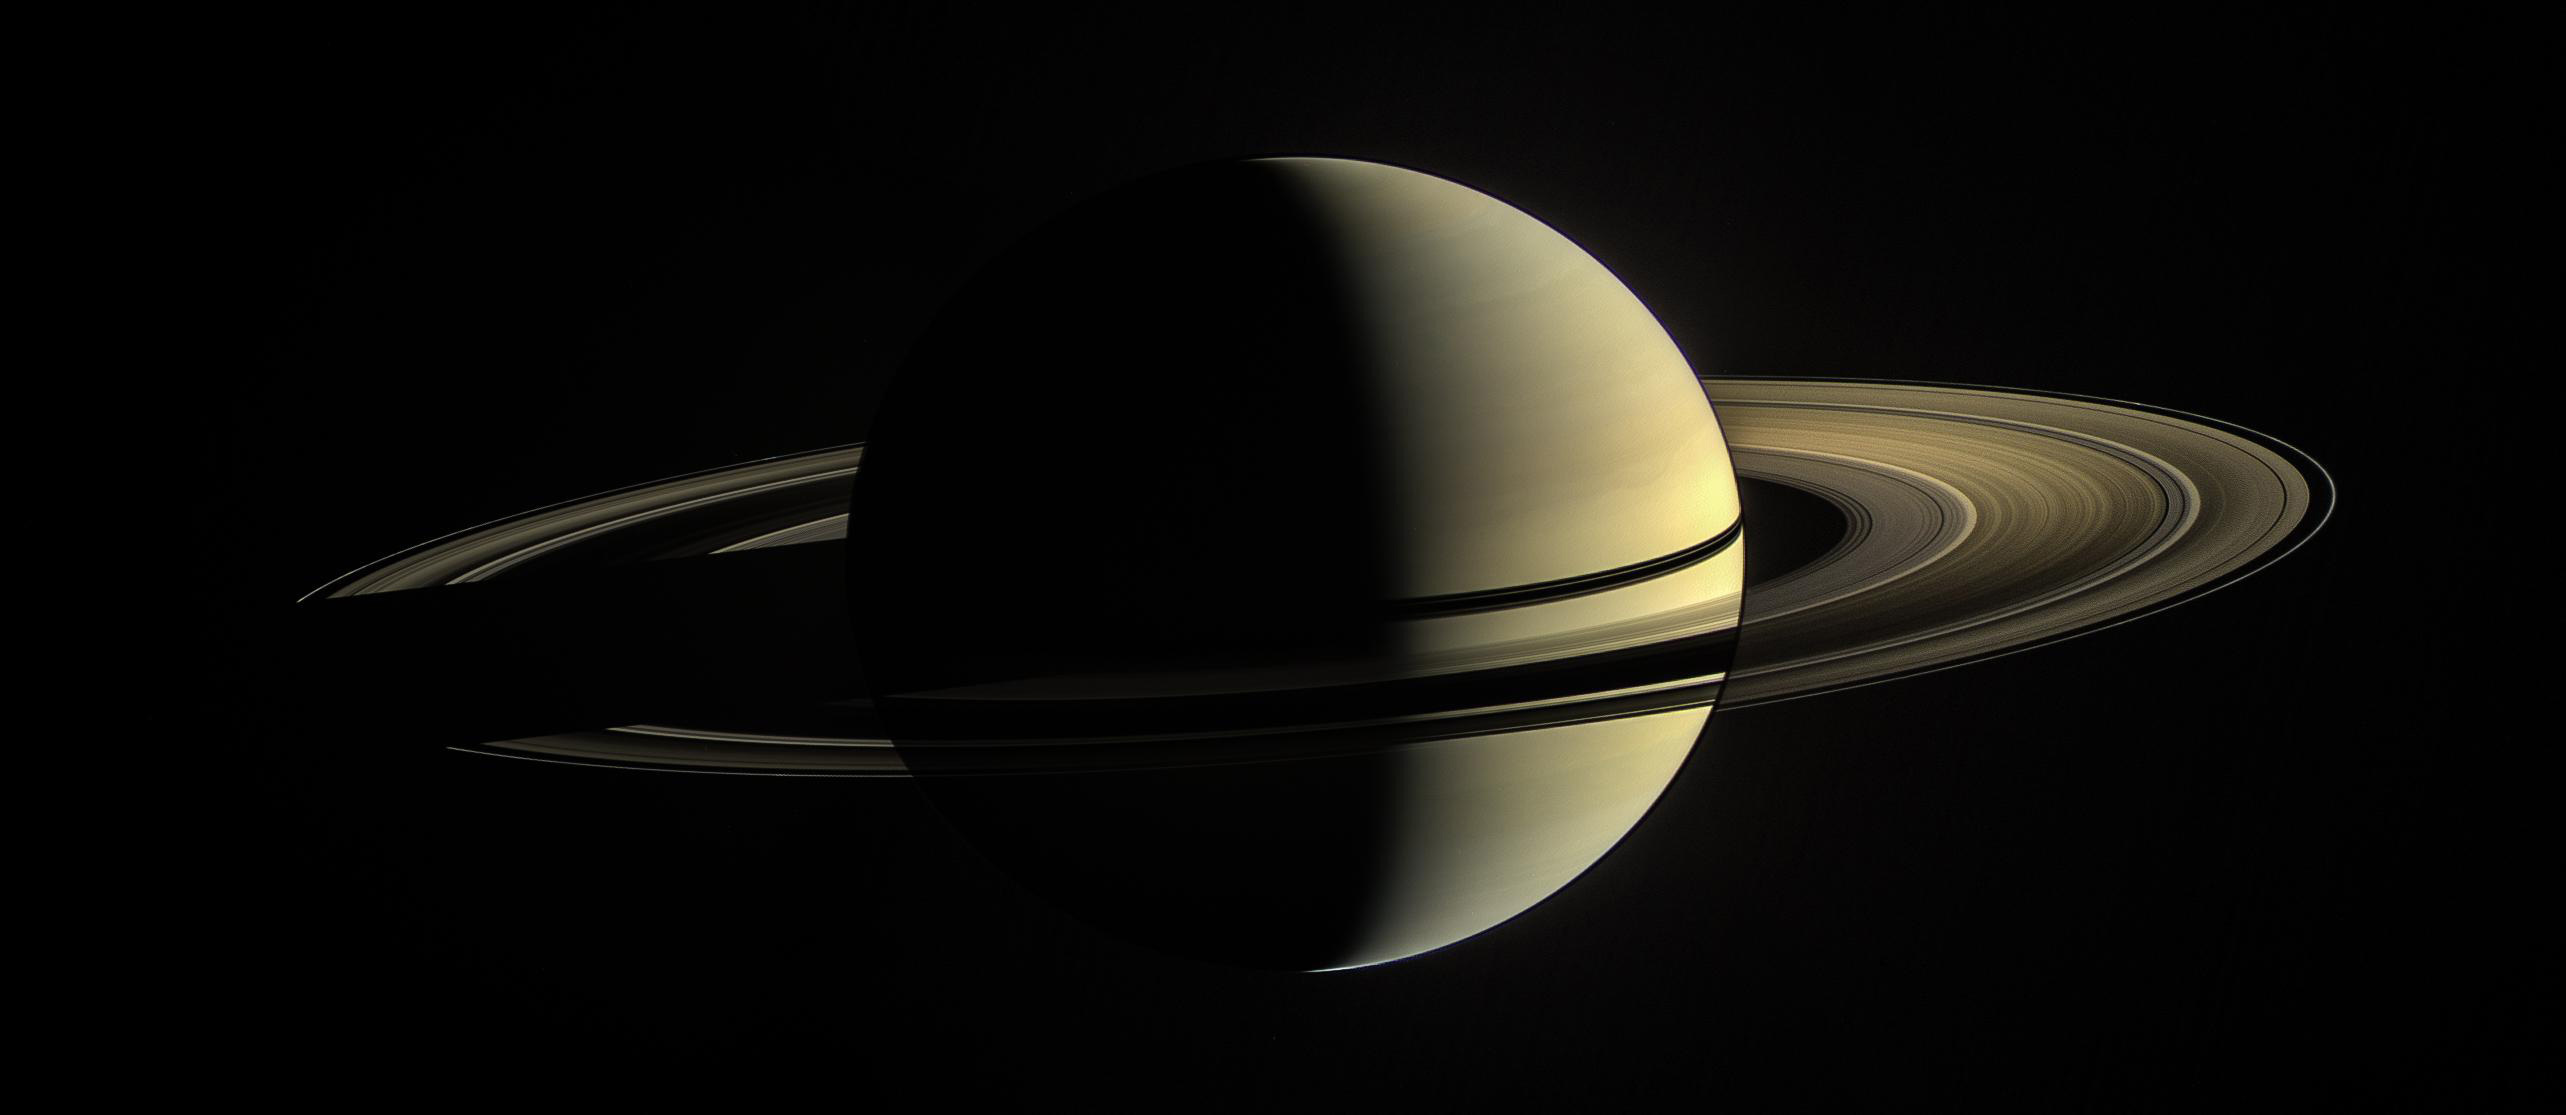 Full view of Saturn partially illuminated by the Sun.